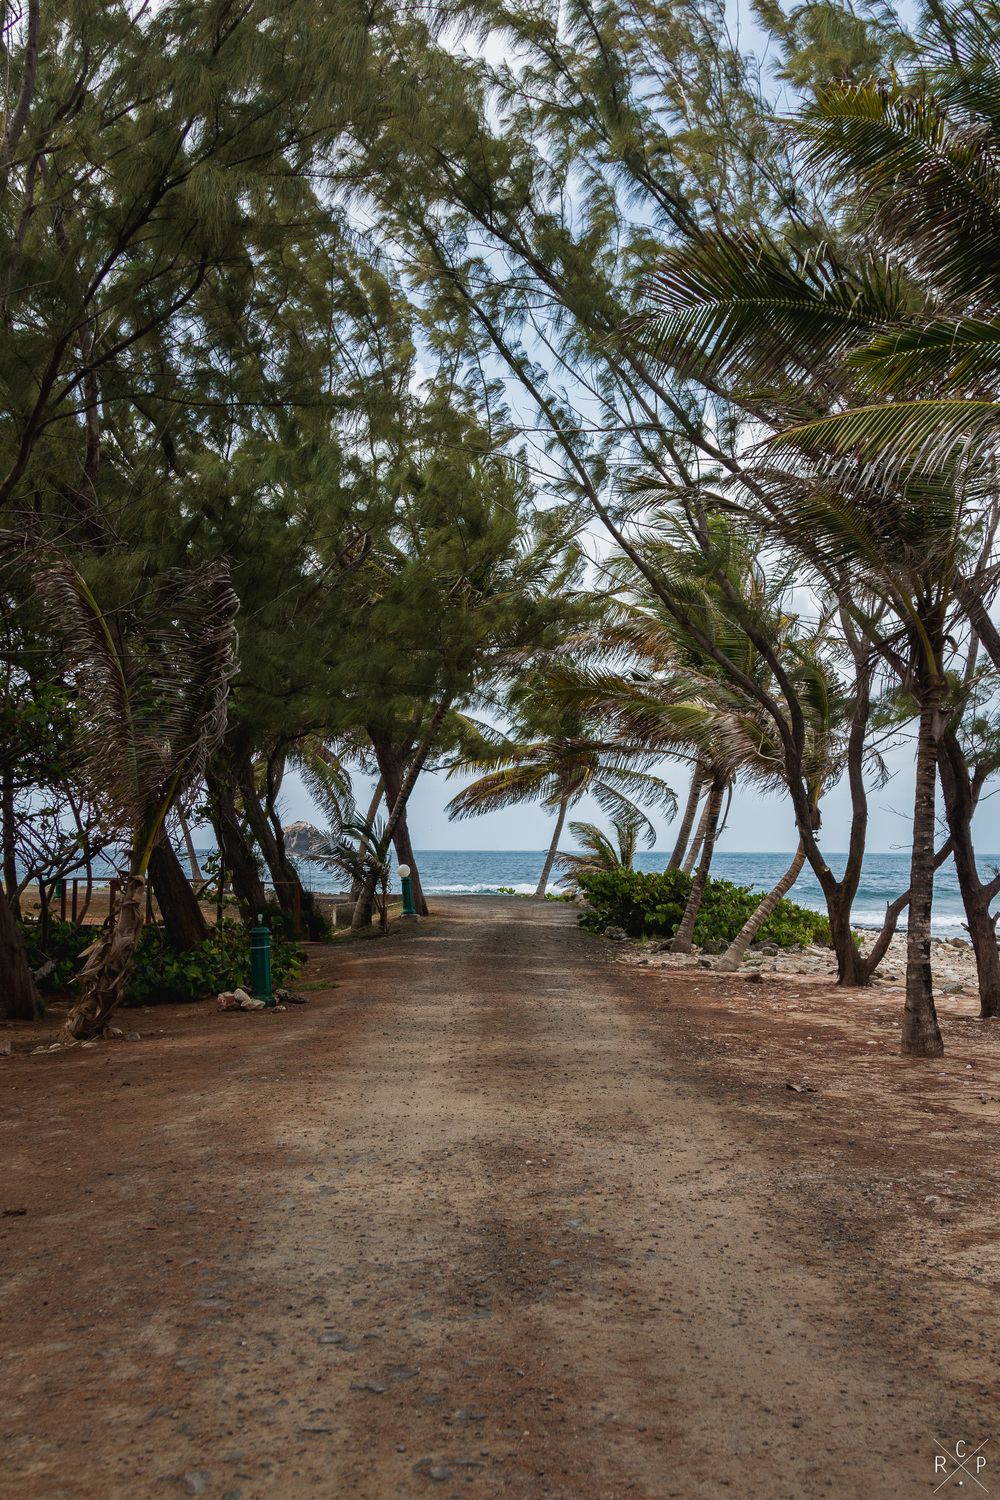 Palm Lined Path - Pigeon Island, Saint Lucia 29/03/2016